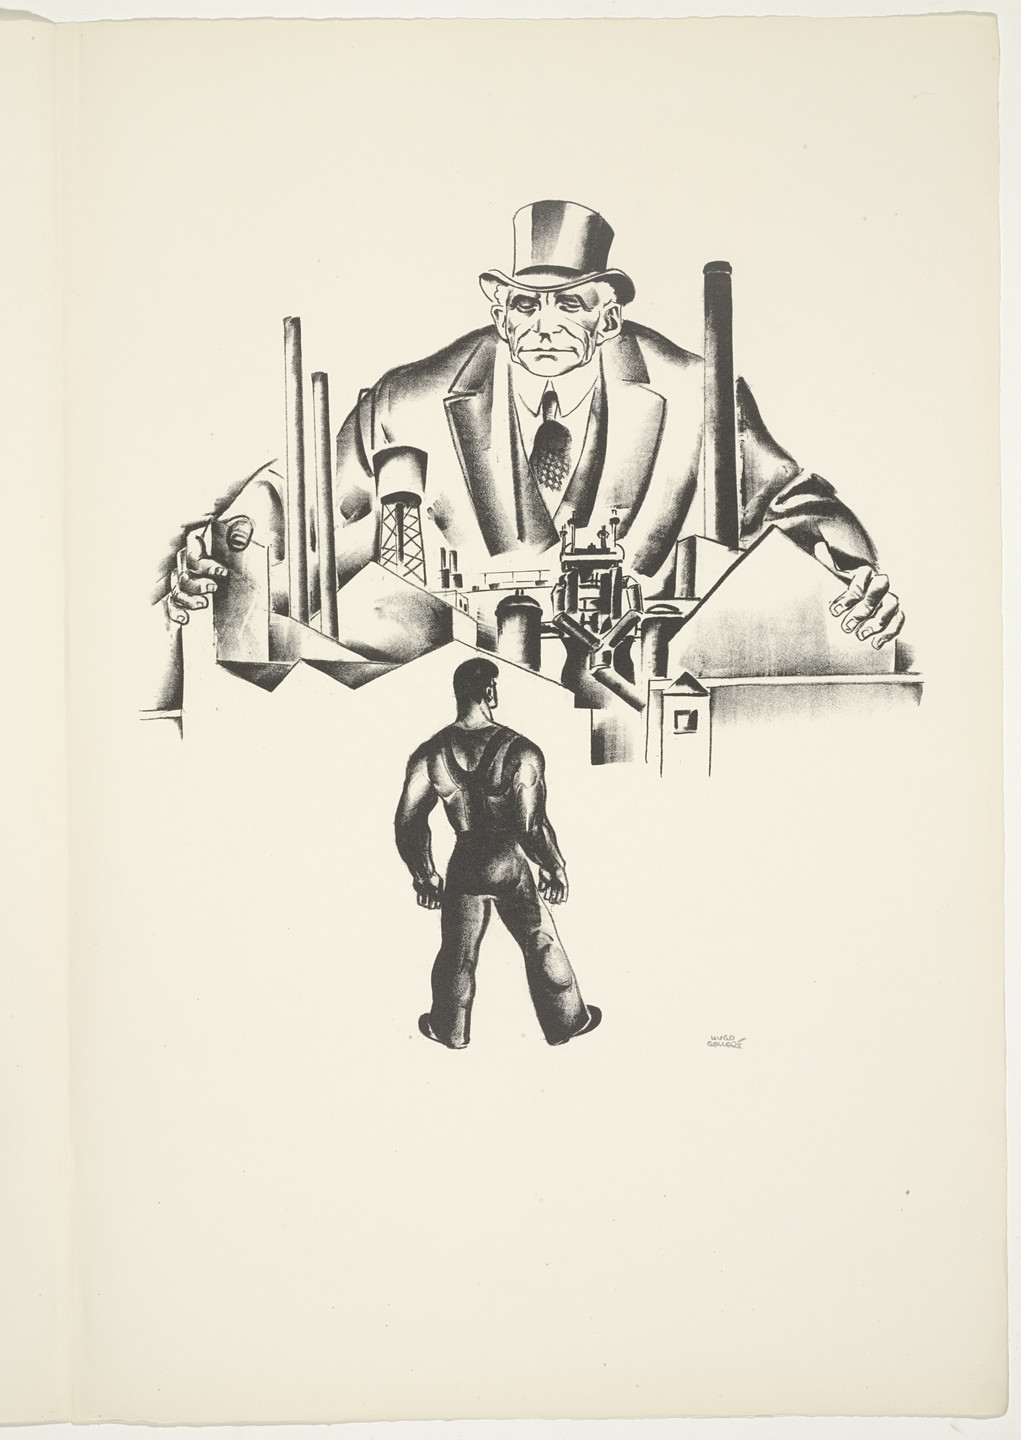 Hugo Gellert. Plate (folio 12) from 'Capital' in Pictures. 1933